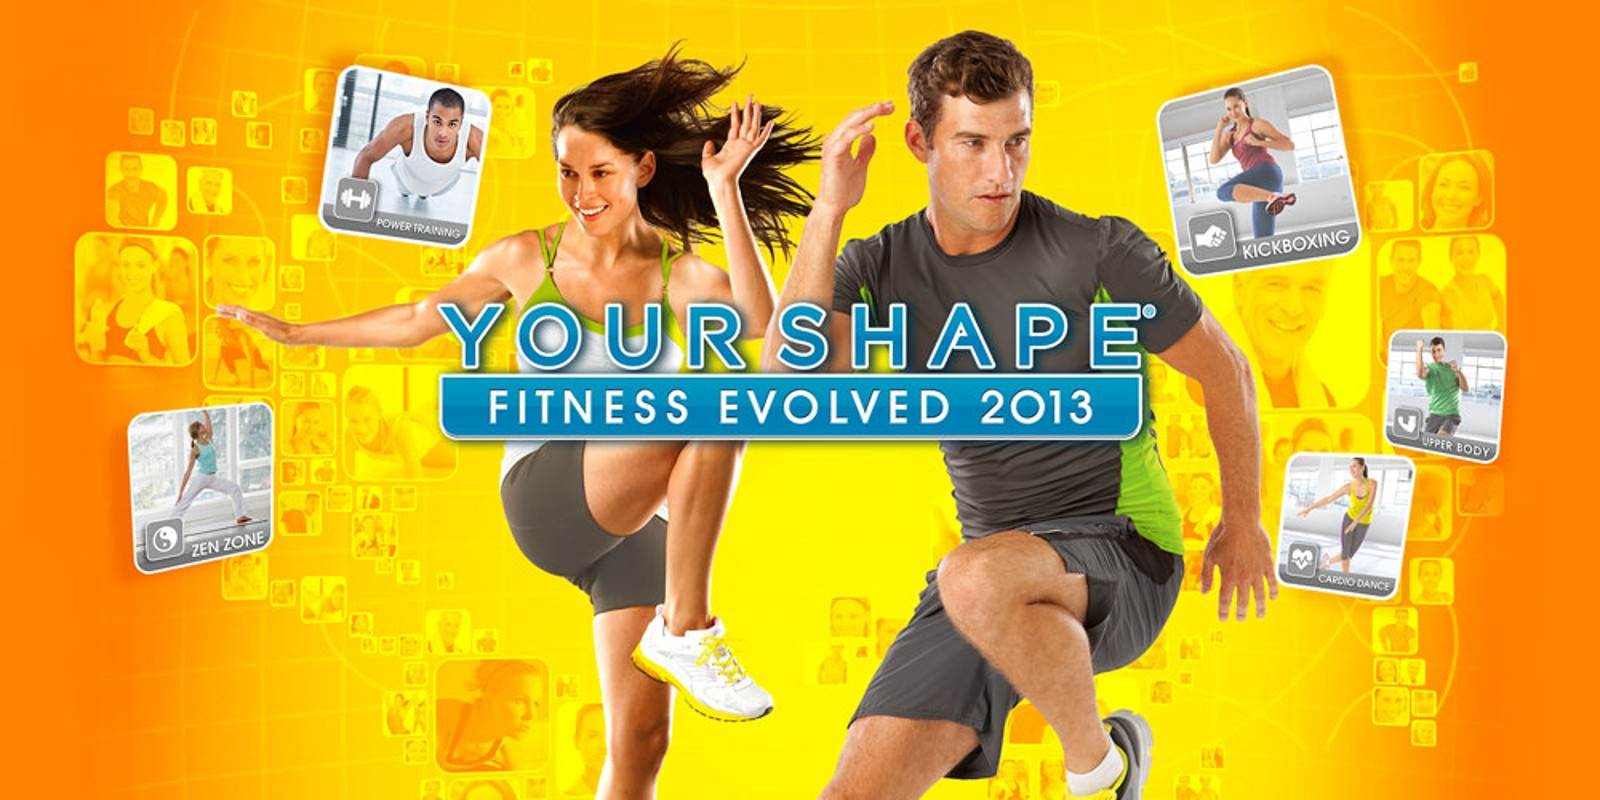 Your Shape®: Fitness Evolved 2013